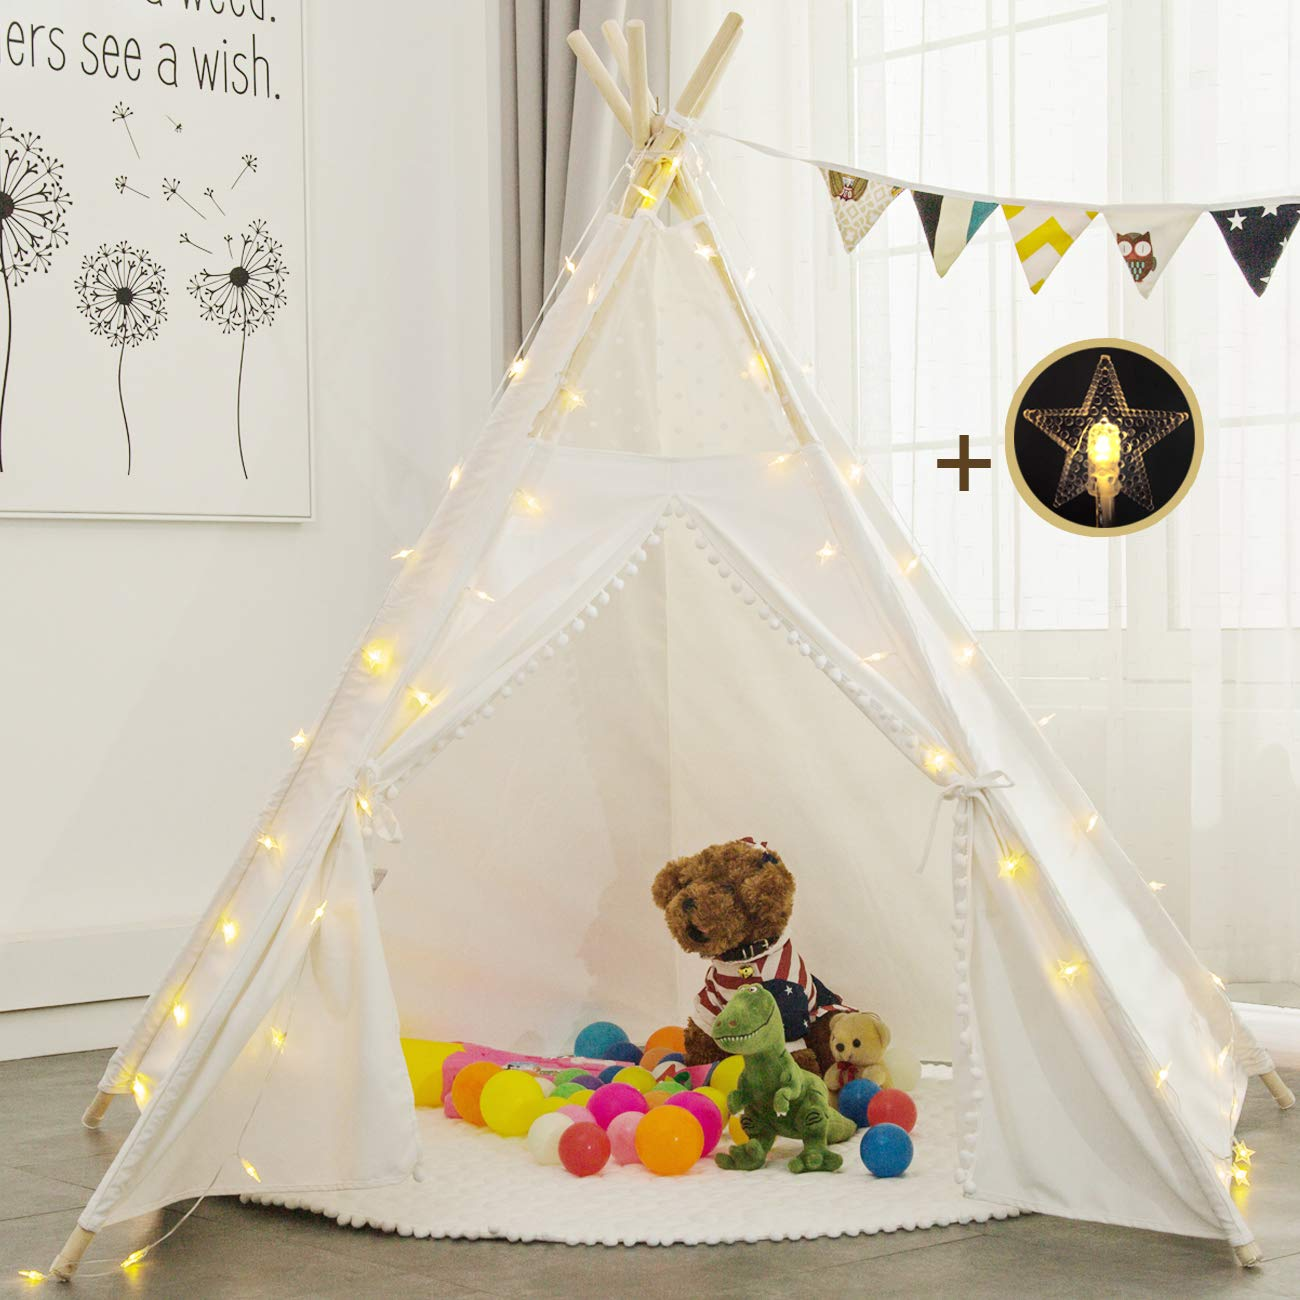 Sunnyglade 6' Teepee Kids Tent with 25FT Little Star Light and Cotton Mat /Indoor Outdoor Children Indian Play Tent 5 Wooden Poles Canvas Tipi with Carry Bag & Random Color Flag Children's Day Gift